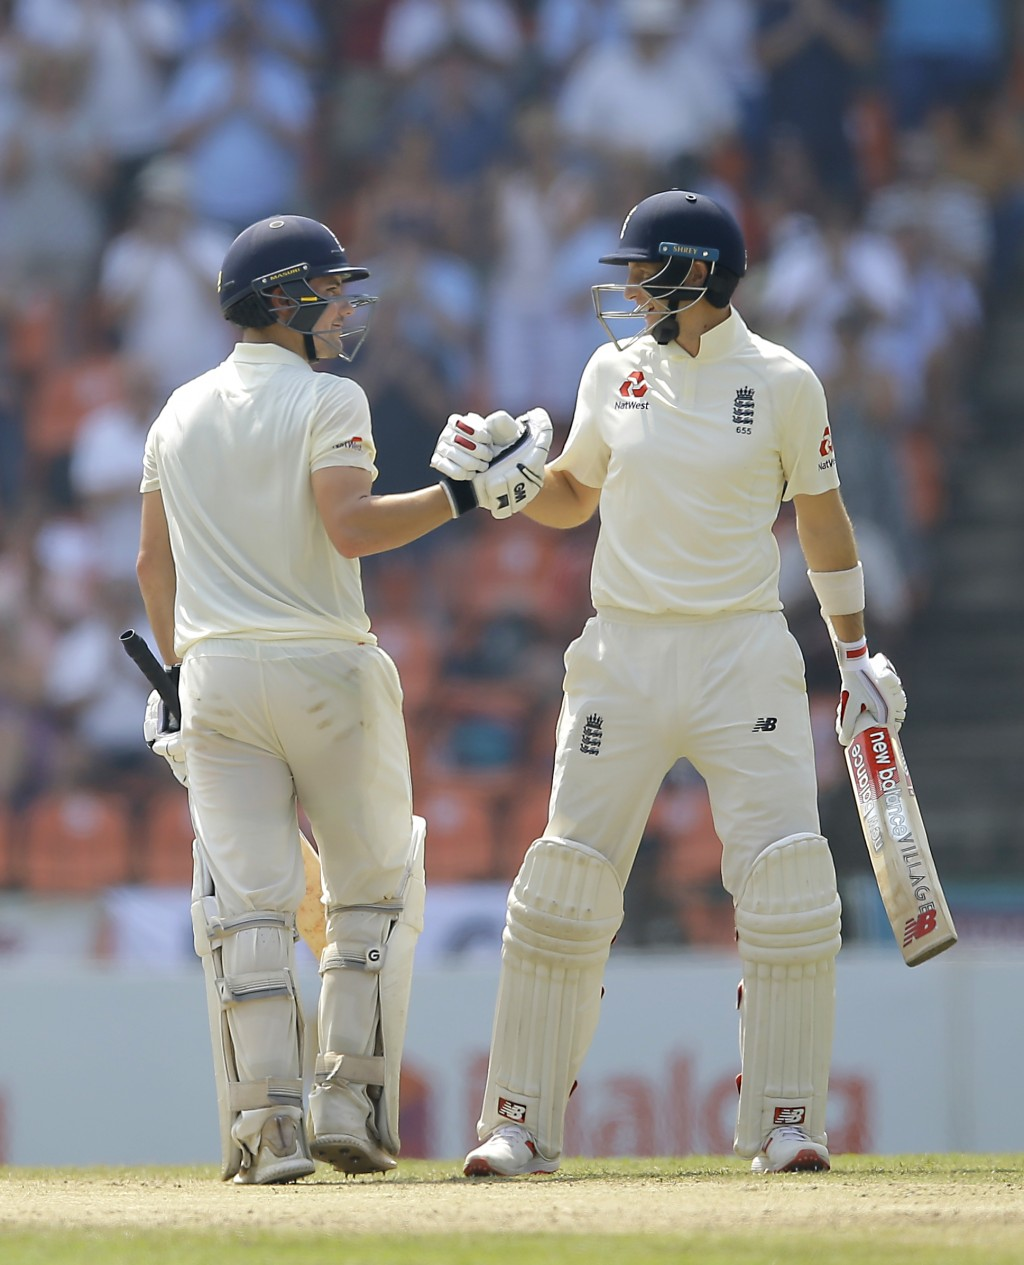 England's captain Joe Root, right, congratulates Rory Burns for scoring a half century during the third day's play of the second test cricket match be...